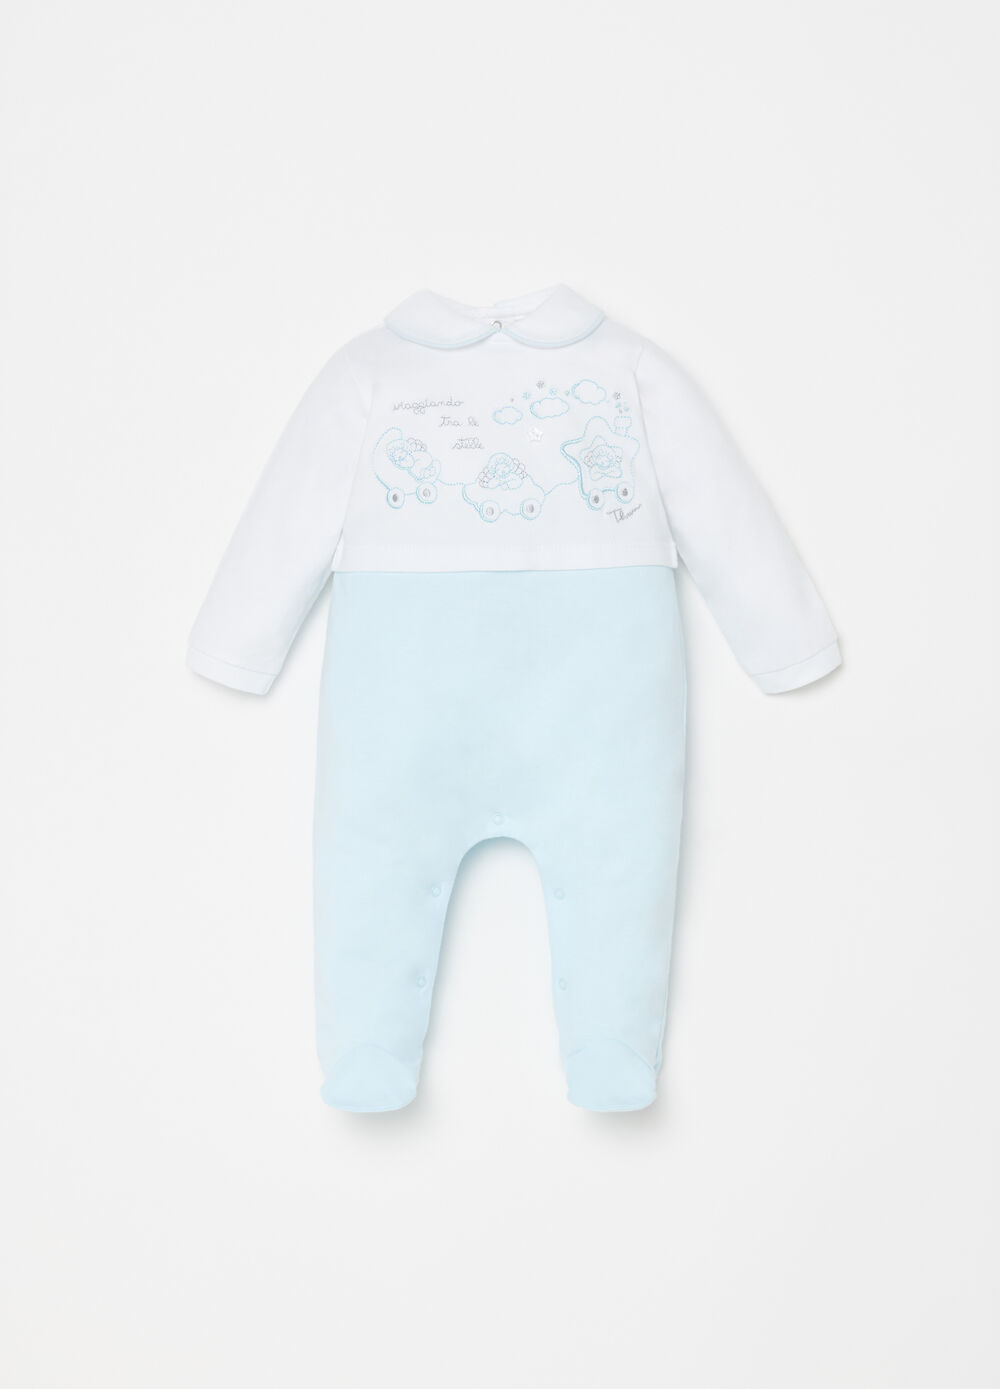 THUN onesie with round collar and feet